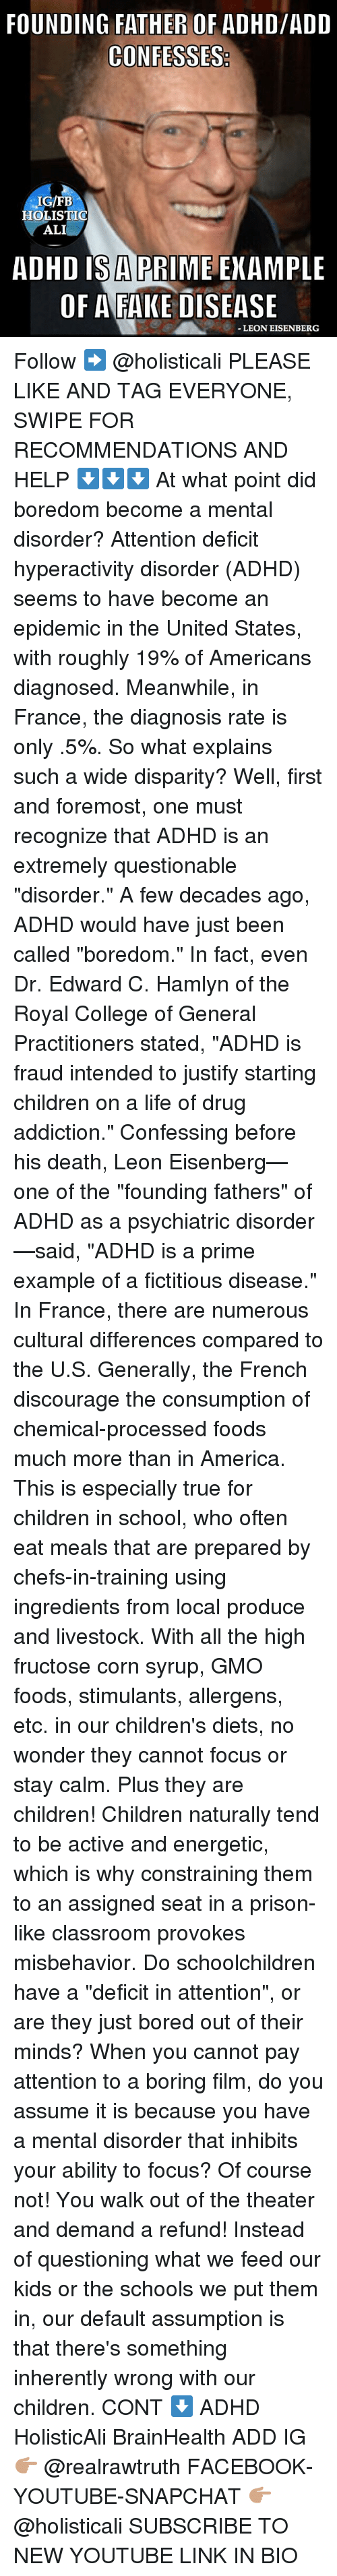 "Ali, America, and Bored: FOUNDING FATHER OF ADHD/ADD  CONFESSES  IGIFB  HOLISTIC  ALI  ADHD ISA PRIME EXAMPLE  OF A FAKE DISEASE  -LEON EISENBERG Follow ➡️ @holisticali PLEASE LIKE AND TAG EVERYONE, SWIPE FOR RECOMMENDATIONS AND HELP ⬇️⬇️⬇️ At what point did boredom become a mental disorder? Attention deficit hyperactivity disorder (ADHD) seems to have become an epidemic in the United States, with roughly 19% of Americans diagnosed. Meanwhile, in France, the diagnosis rate is only .5%. So what explains such a wide disparity? Well, first and foremost, one must recognize that ADHD is an extremely questionable ""disorder."" A few decades ago, ADHD would have just been called ""boredom."" In fact, even Dr. Edward C. Hamlyn of the Royal College of General Practitioners stated, ""ADHD is fraud intended to justify starting children on a life of drug addiction."" Confessing before his death, Leon Eisenberg—one of the ""founding fathers"" of ADHD as a psychiatric disorder—said, ""ADHD is a prime example of a fictitious disease."" In France, there are numerous cultural differences compared to the U.S. Generally, the French discourage the consumption of chemical-processed foods much more than in America. This is especially true for children in school, who often eat meals that are prepared by chefs-in-training using ingredients from local produce and livestock. With all the high fructose corn syrup, GMO foods, stimulants, allergens, etc. in our children's diets, no wonder they cannot focus or stay calm. Plus they are children! Children naturally tend to be active and energetic, which is why constraining them to an assigned seat in a prison-like classroom provokes misbehavior. Do schoolchildren have a ""deficit in attention"", or are they just bored out of their minds? When you cannot pay attention to a boring film, do you assume it is because you have a mental disorder that inhibits your ability to focus? Of course not! You walk out of the theater and demand a refund! Instead of questioning what we feed our kids or the schools we put them in, our default assumption is that there's something inherently wrong with our children. CONT ⬇️ ADHD HolisticAli BrainHealth ADD IG 👉🏽 @realrawtruth FACEBOOK-YOUTUBE-SNAPCHAT 👉🏽 @holisticali SUBSCRIBE TO NEW YOUTUBE LINK IN BIO"